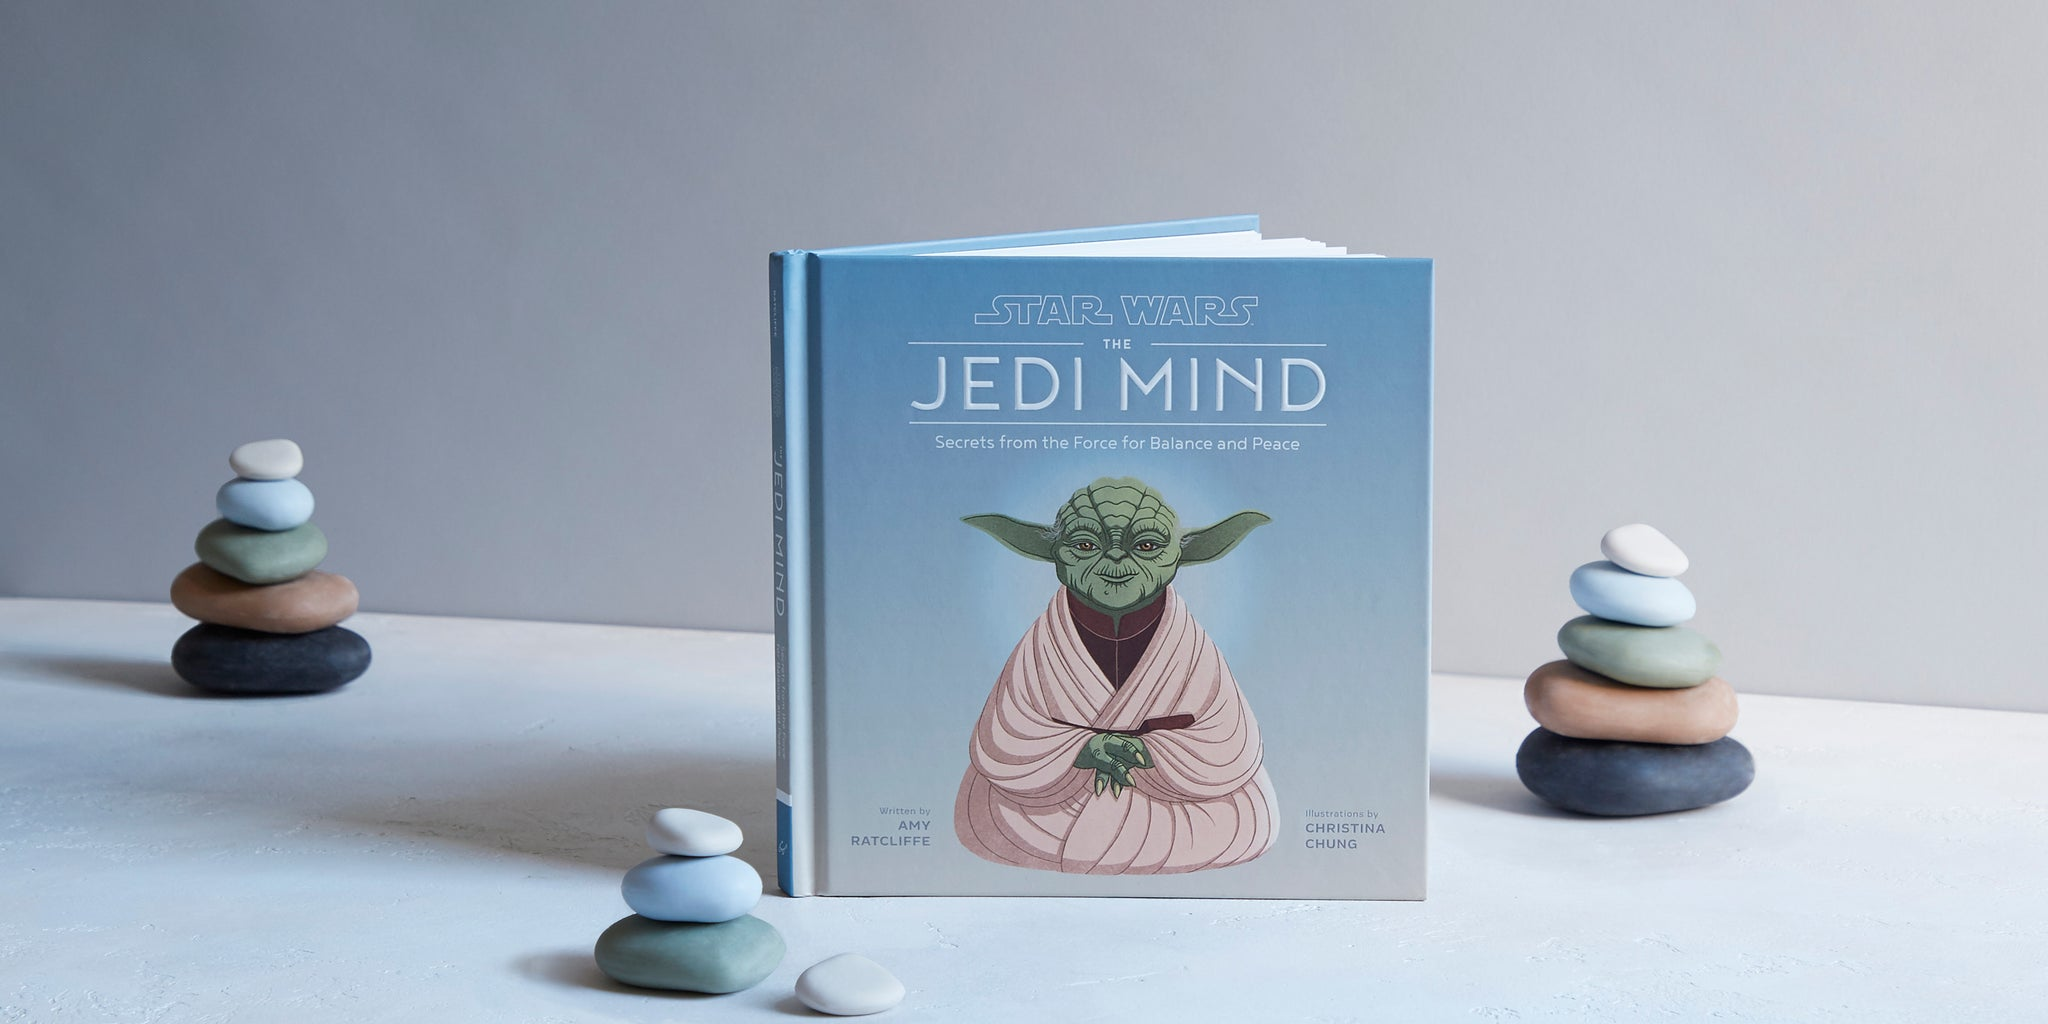 Star Wars The Jedi Mind book with stacking stones